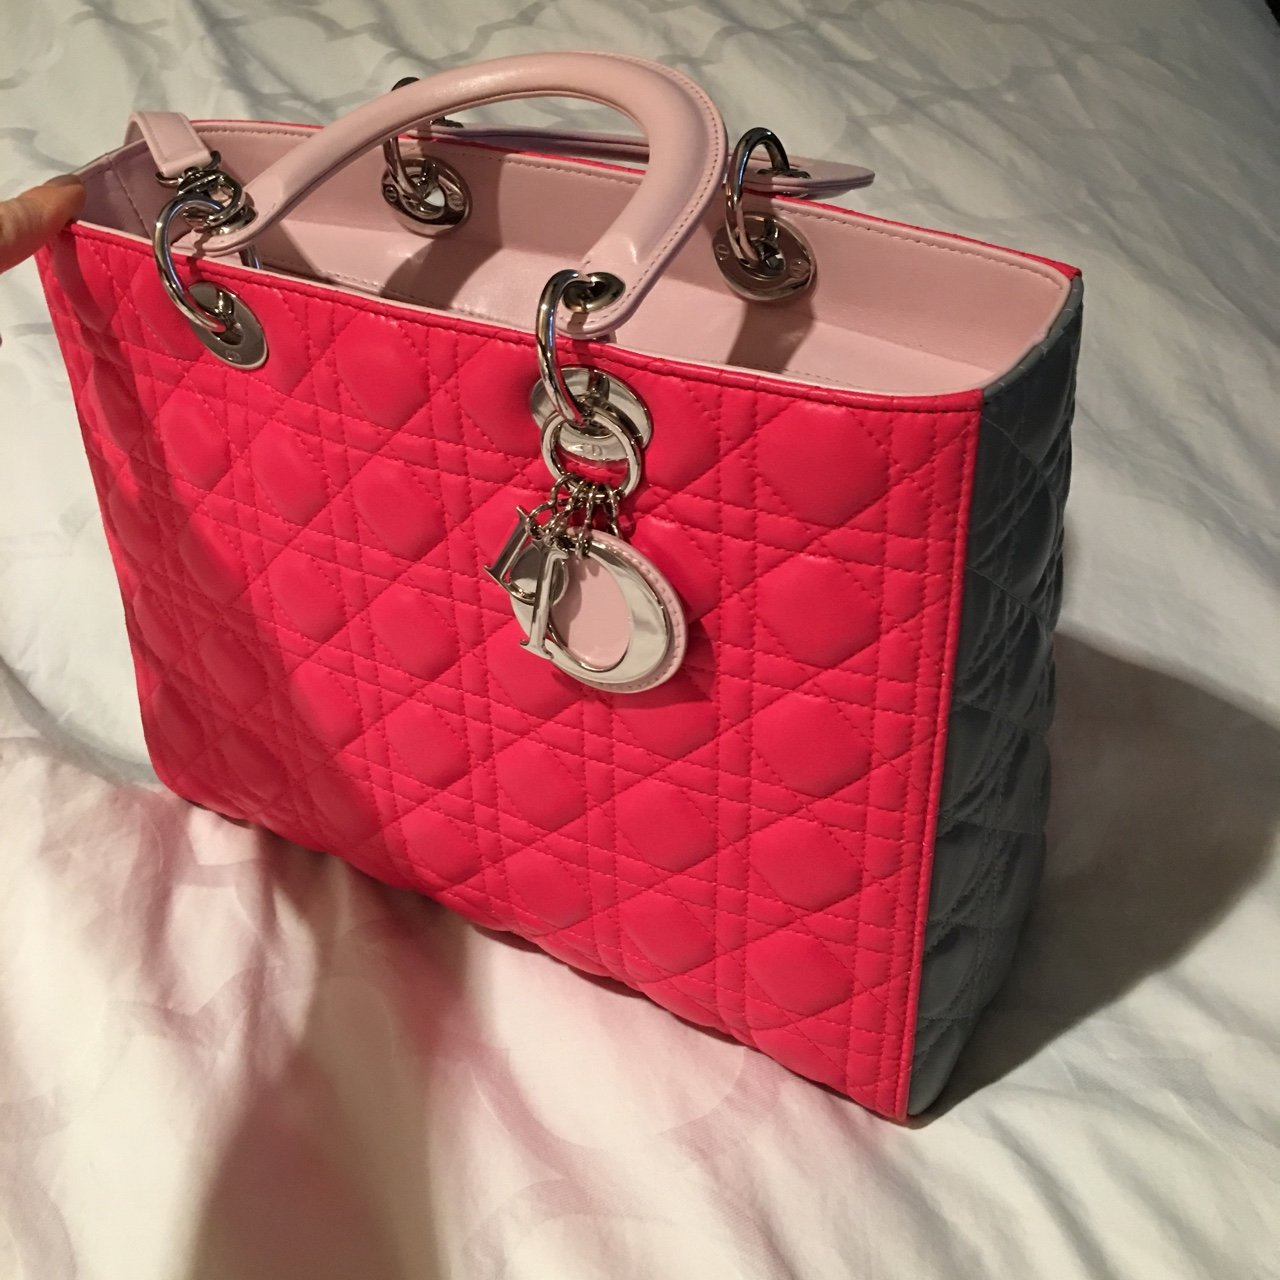 Dior. Lady dior large bag. Brand new with box. Tricolor. I - Depop f7c96194a0362